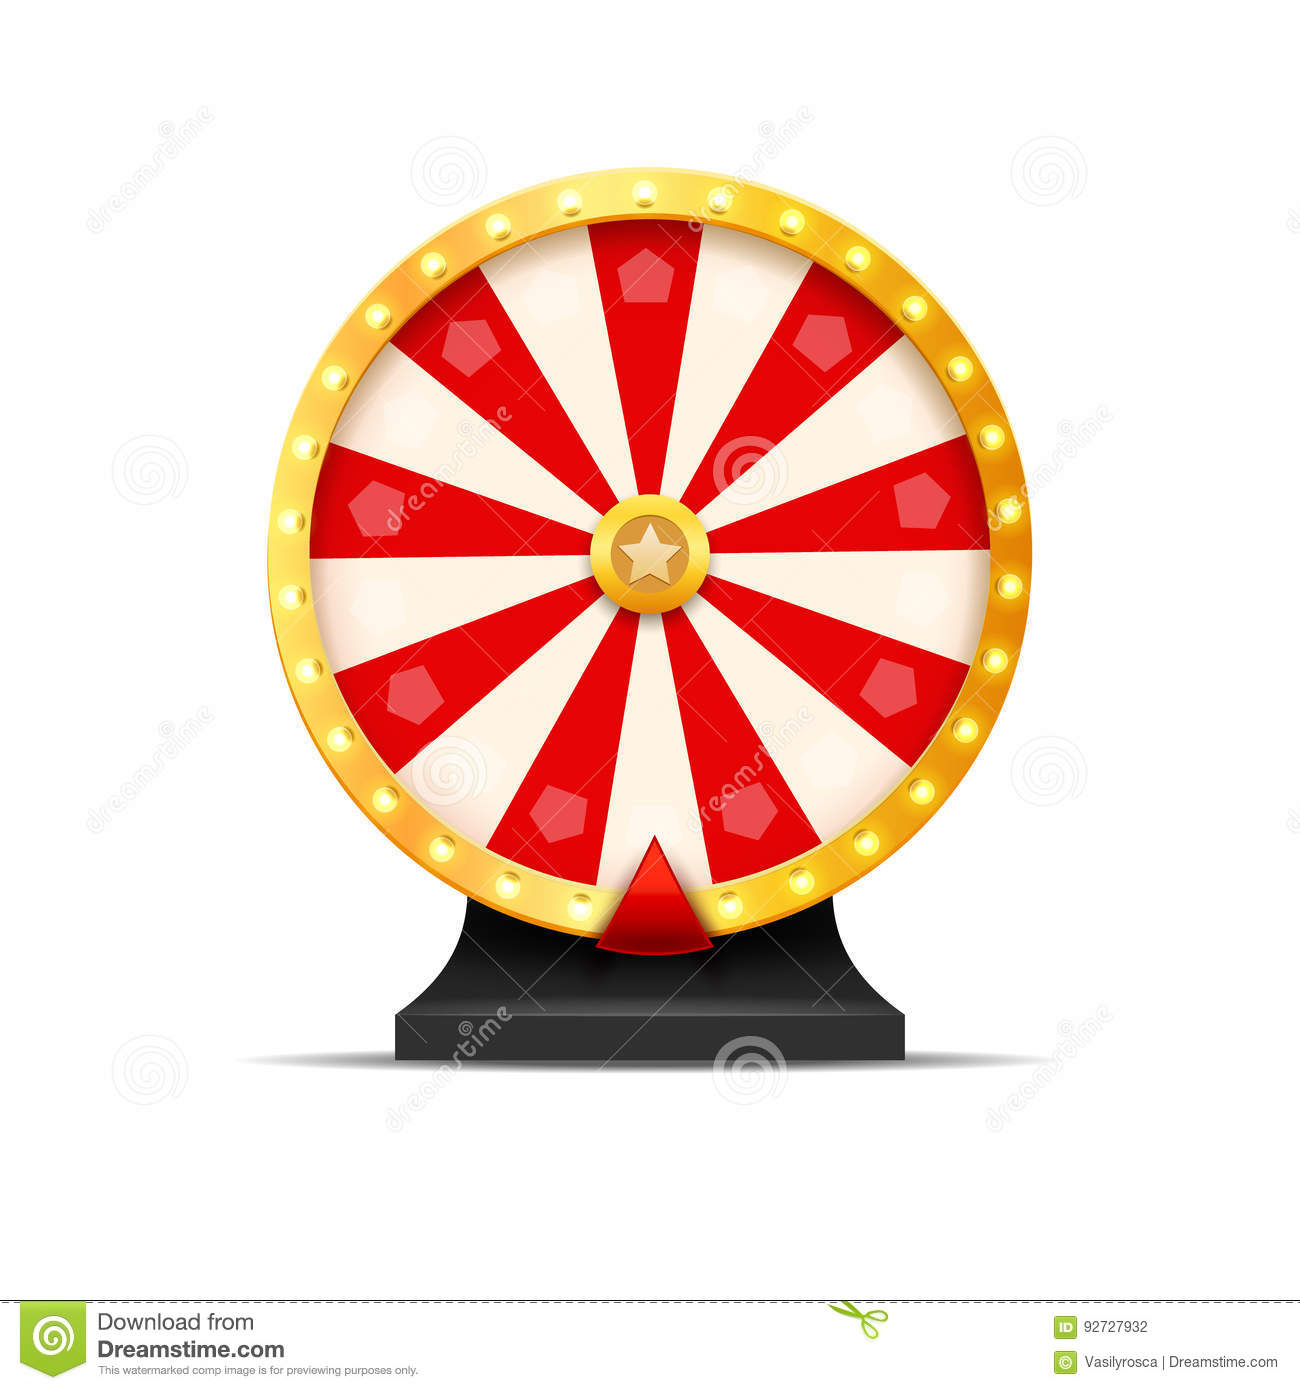 French Roulette lizenziertes - 840800